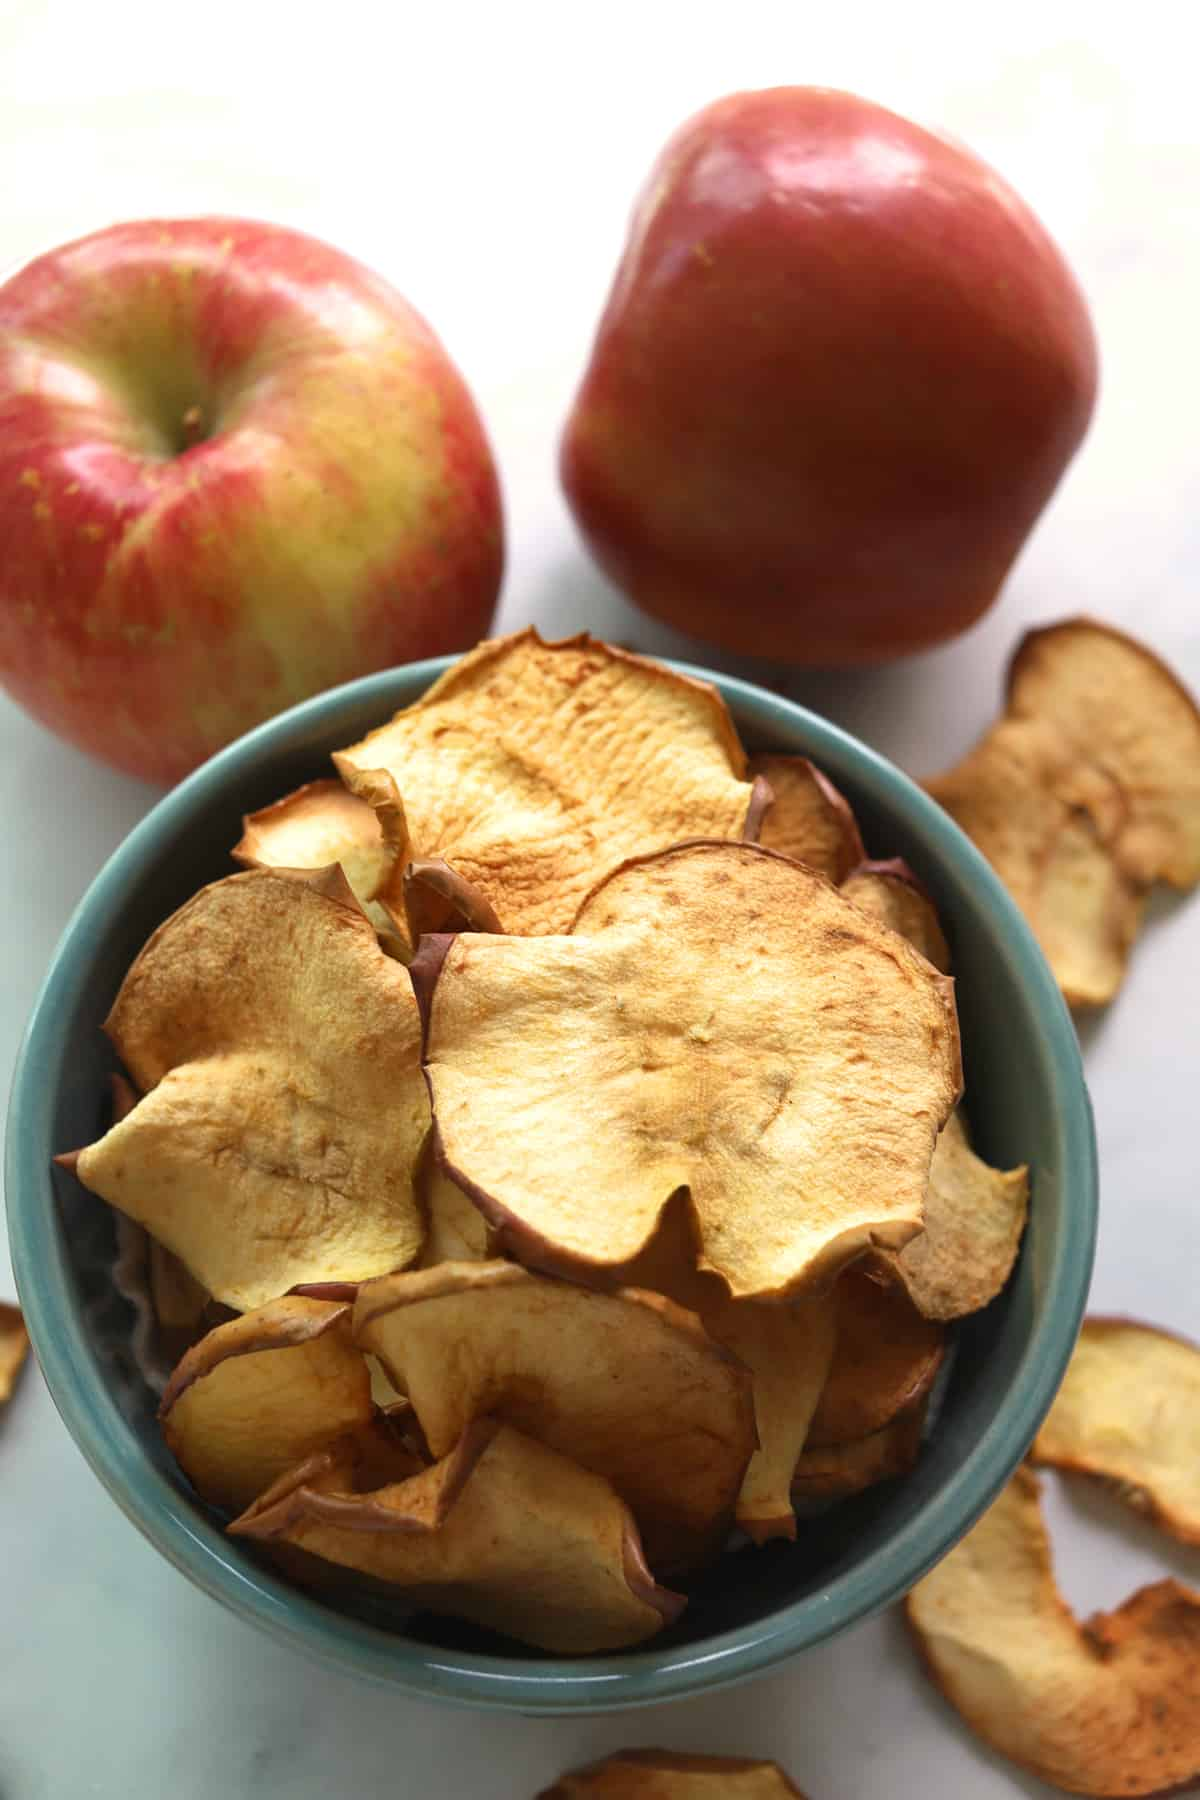 2 Apples in background with apple chips in a bowl.